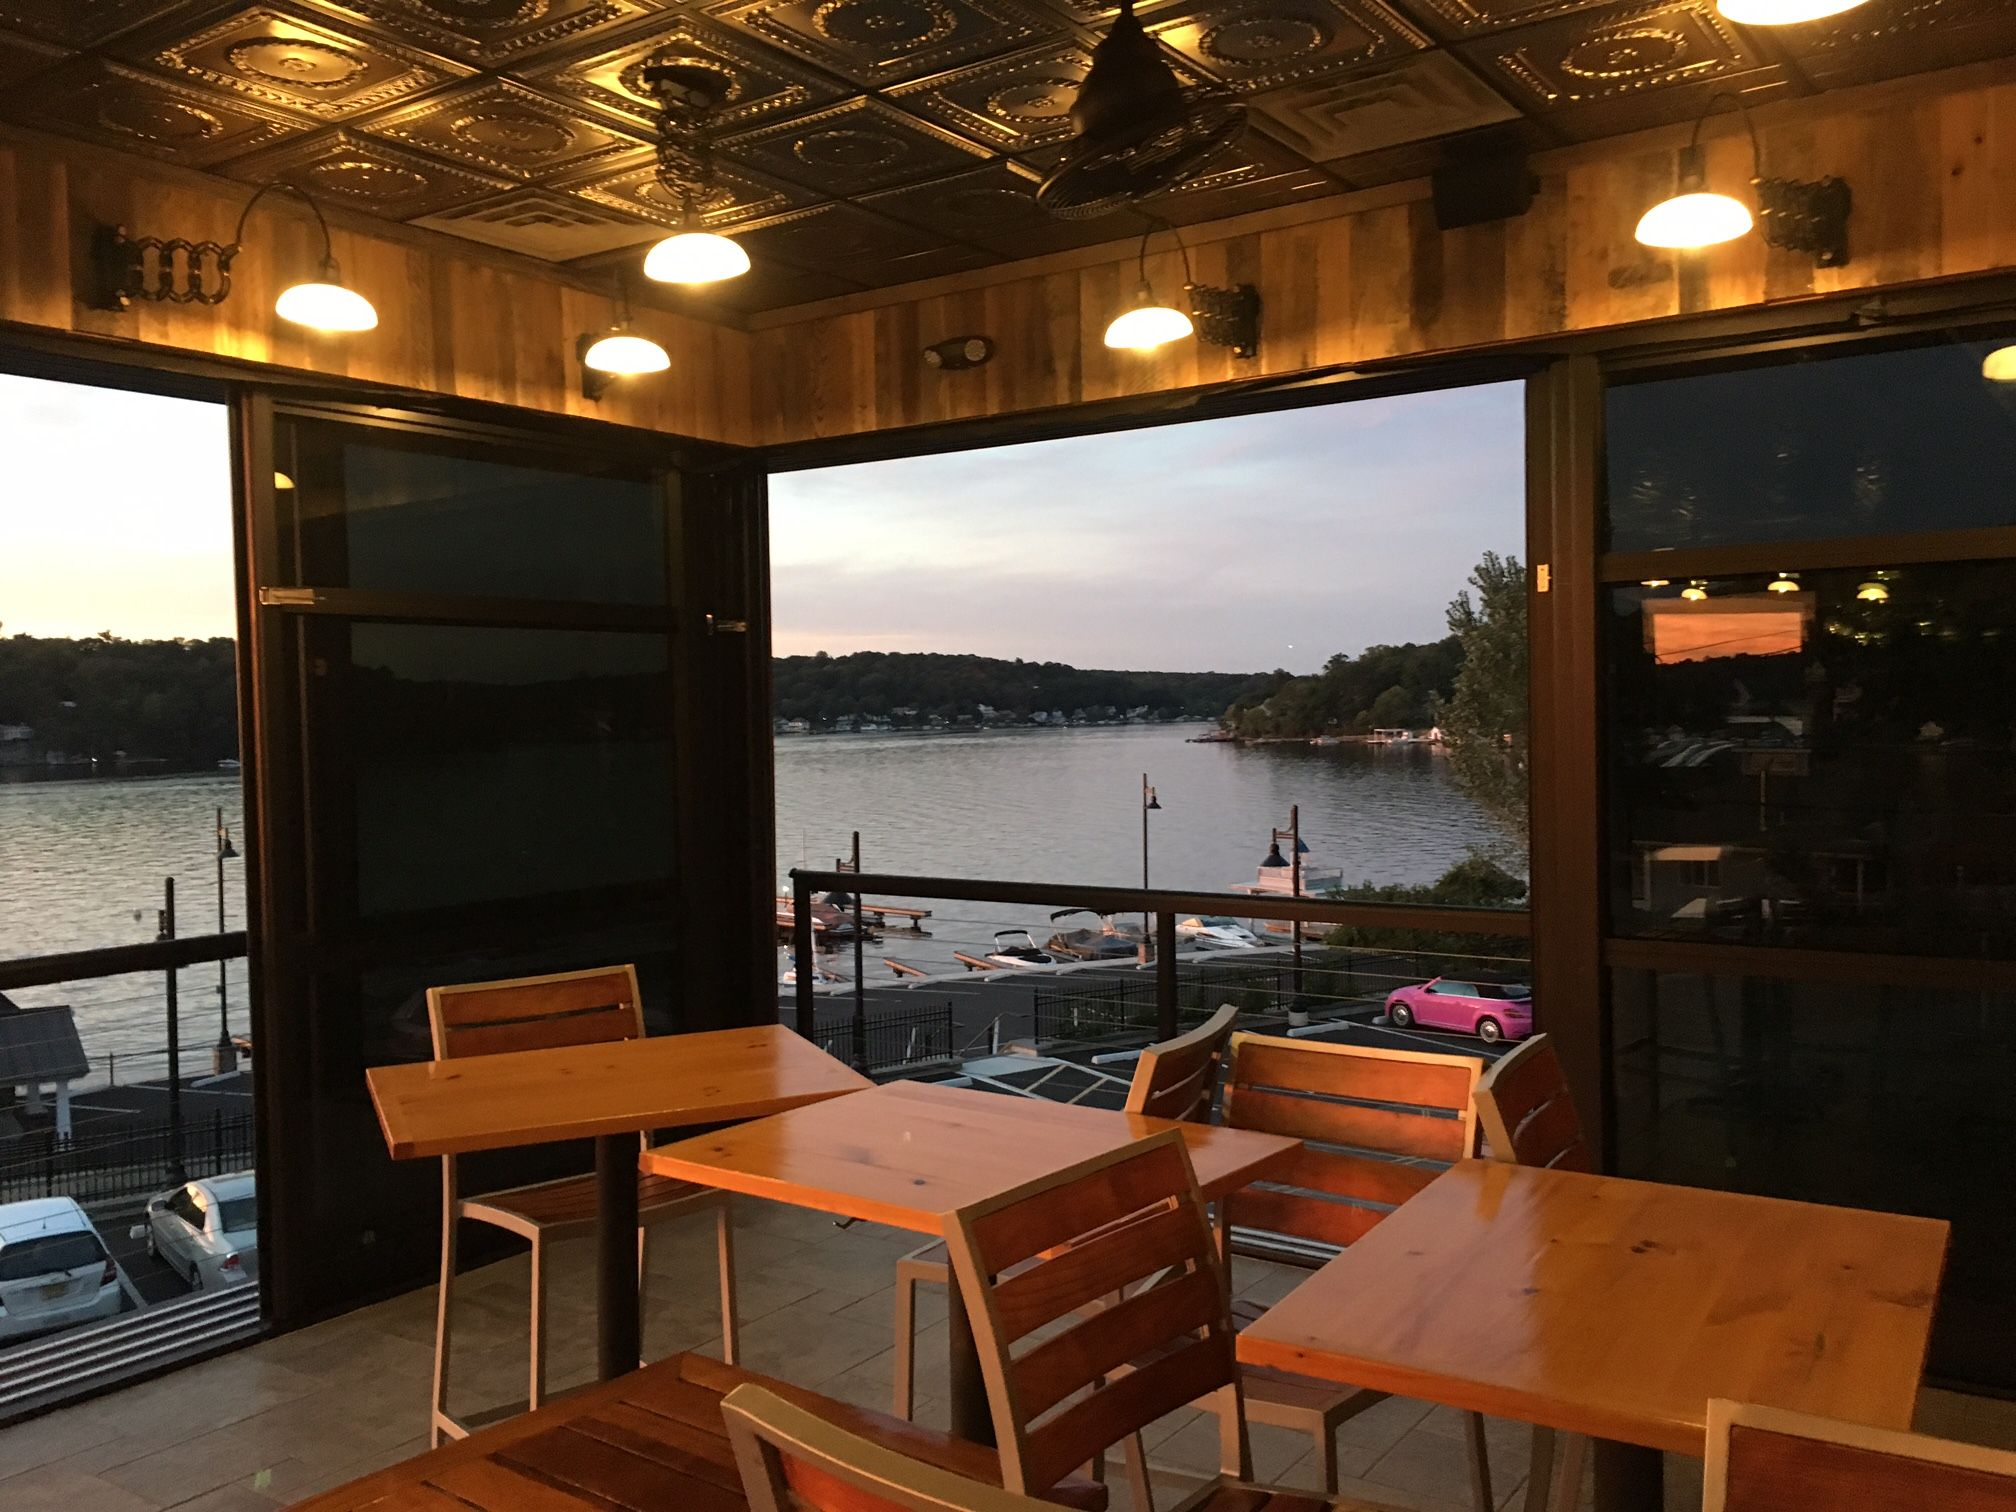 Roll A Cover S Retractable Rolling Wall System At Alice S Restaurant In Lake Hopatcong Nj Wall Systems Home Decor Hopatcong